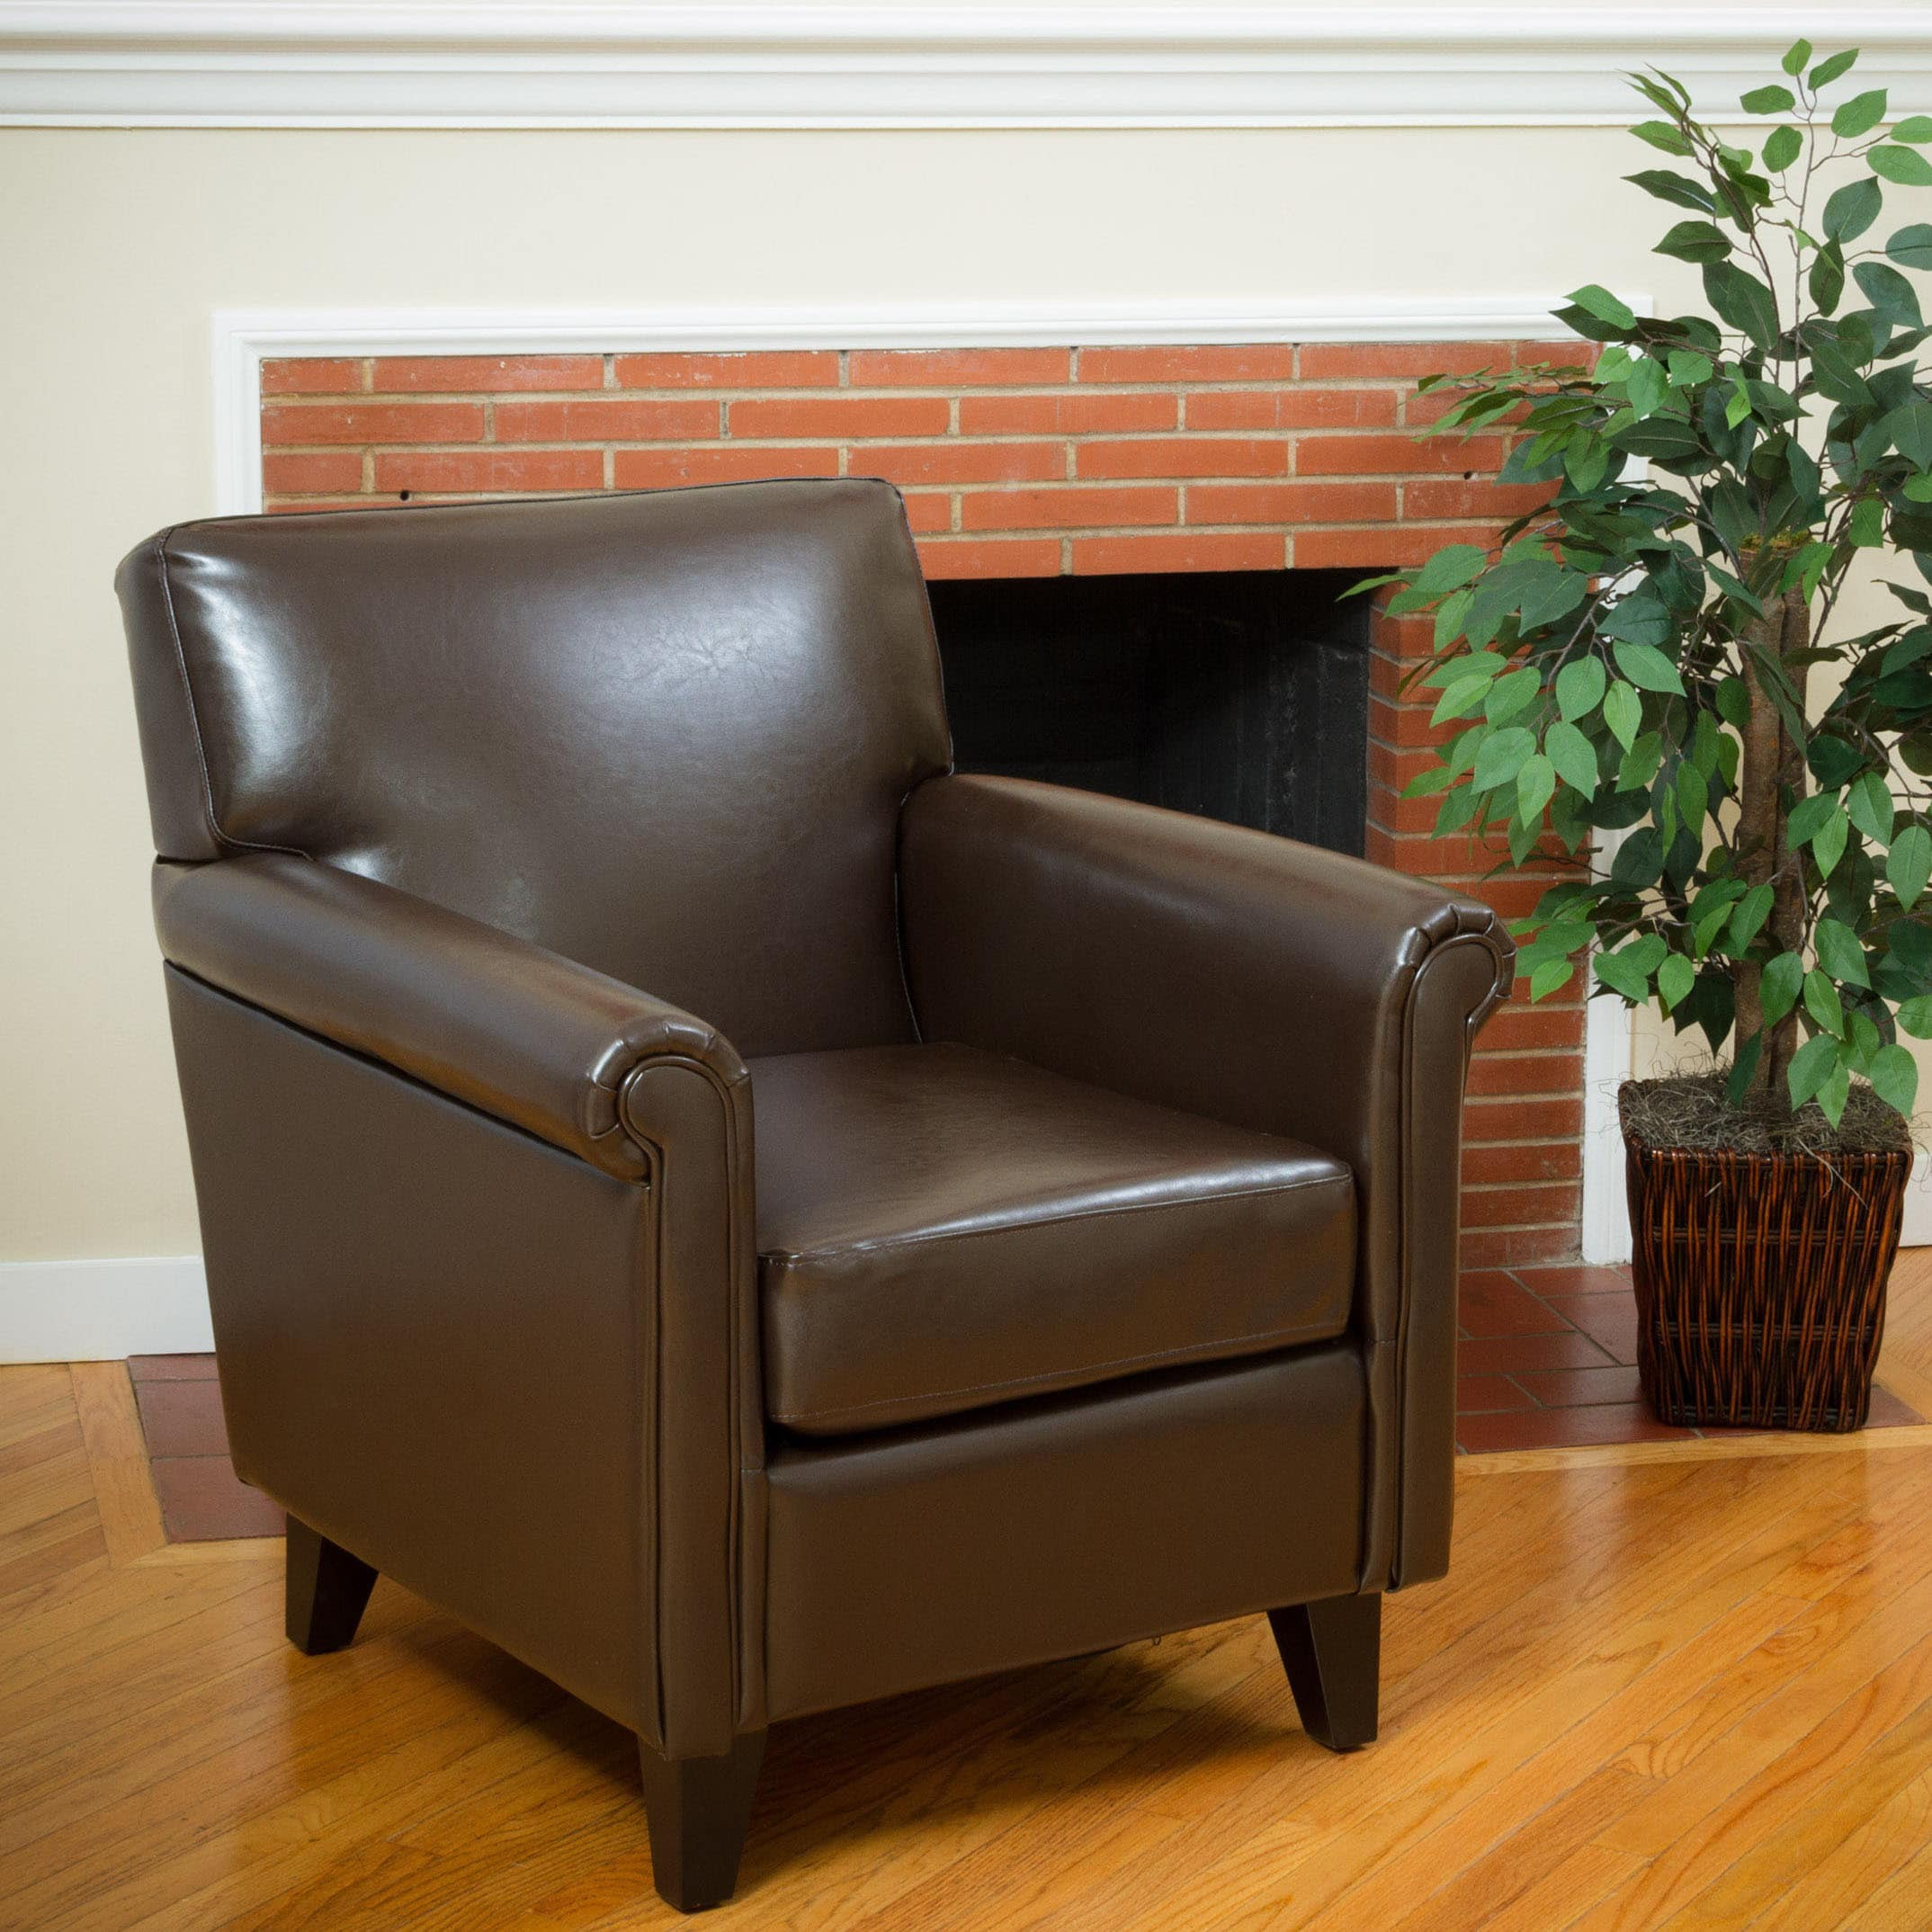 Christopher Knight Home Leeds Classic Brown Bonded Leather Club Chair by